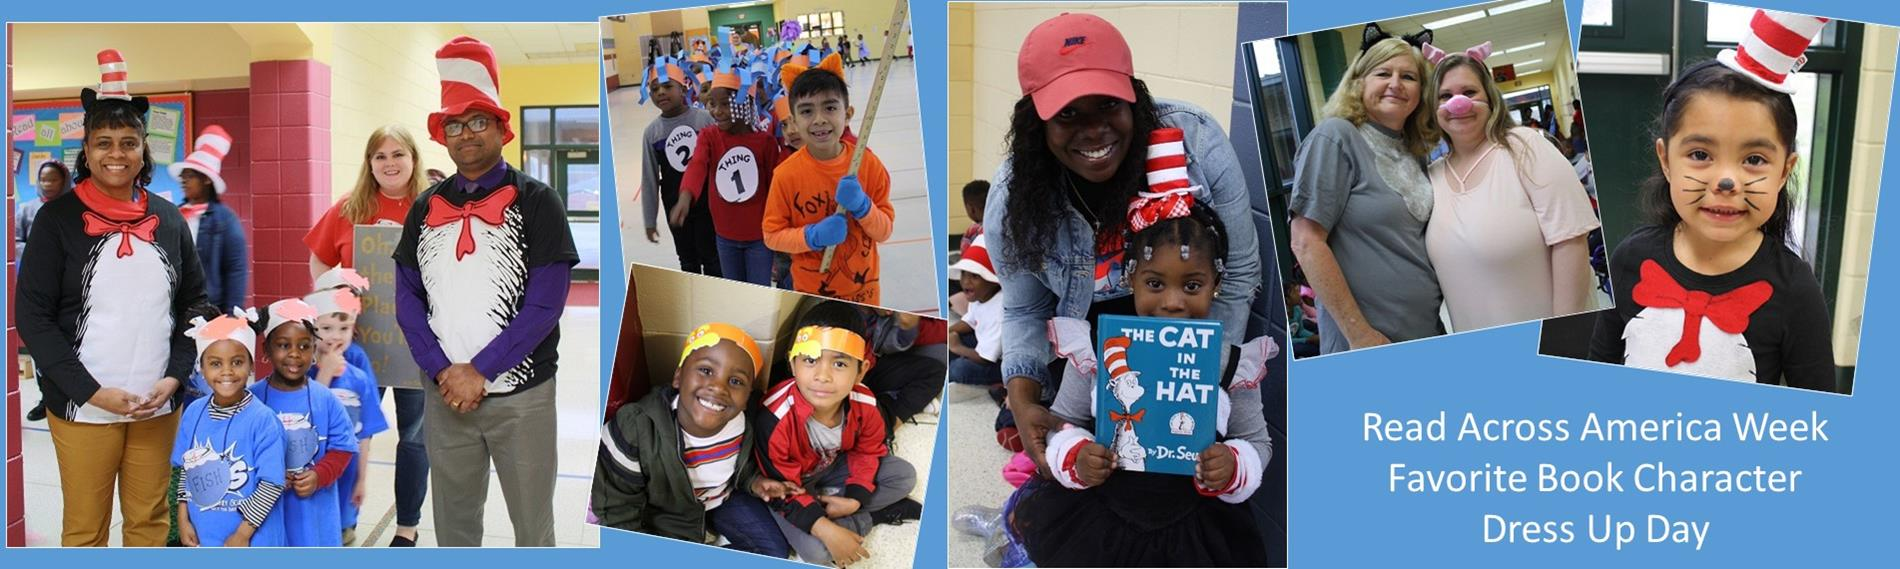 Read Across America Week - Book Character Dress Up Day